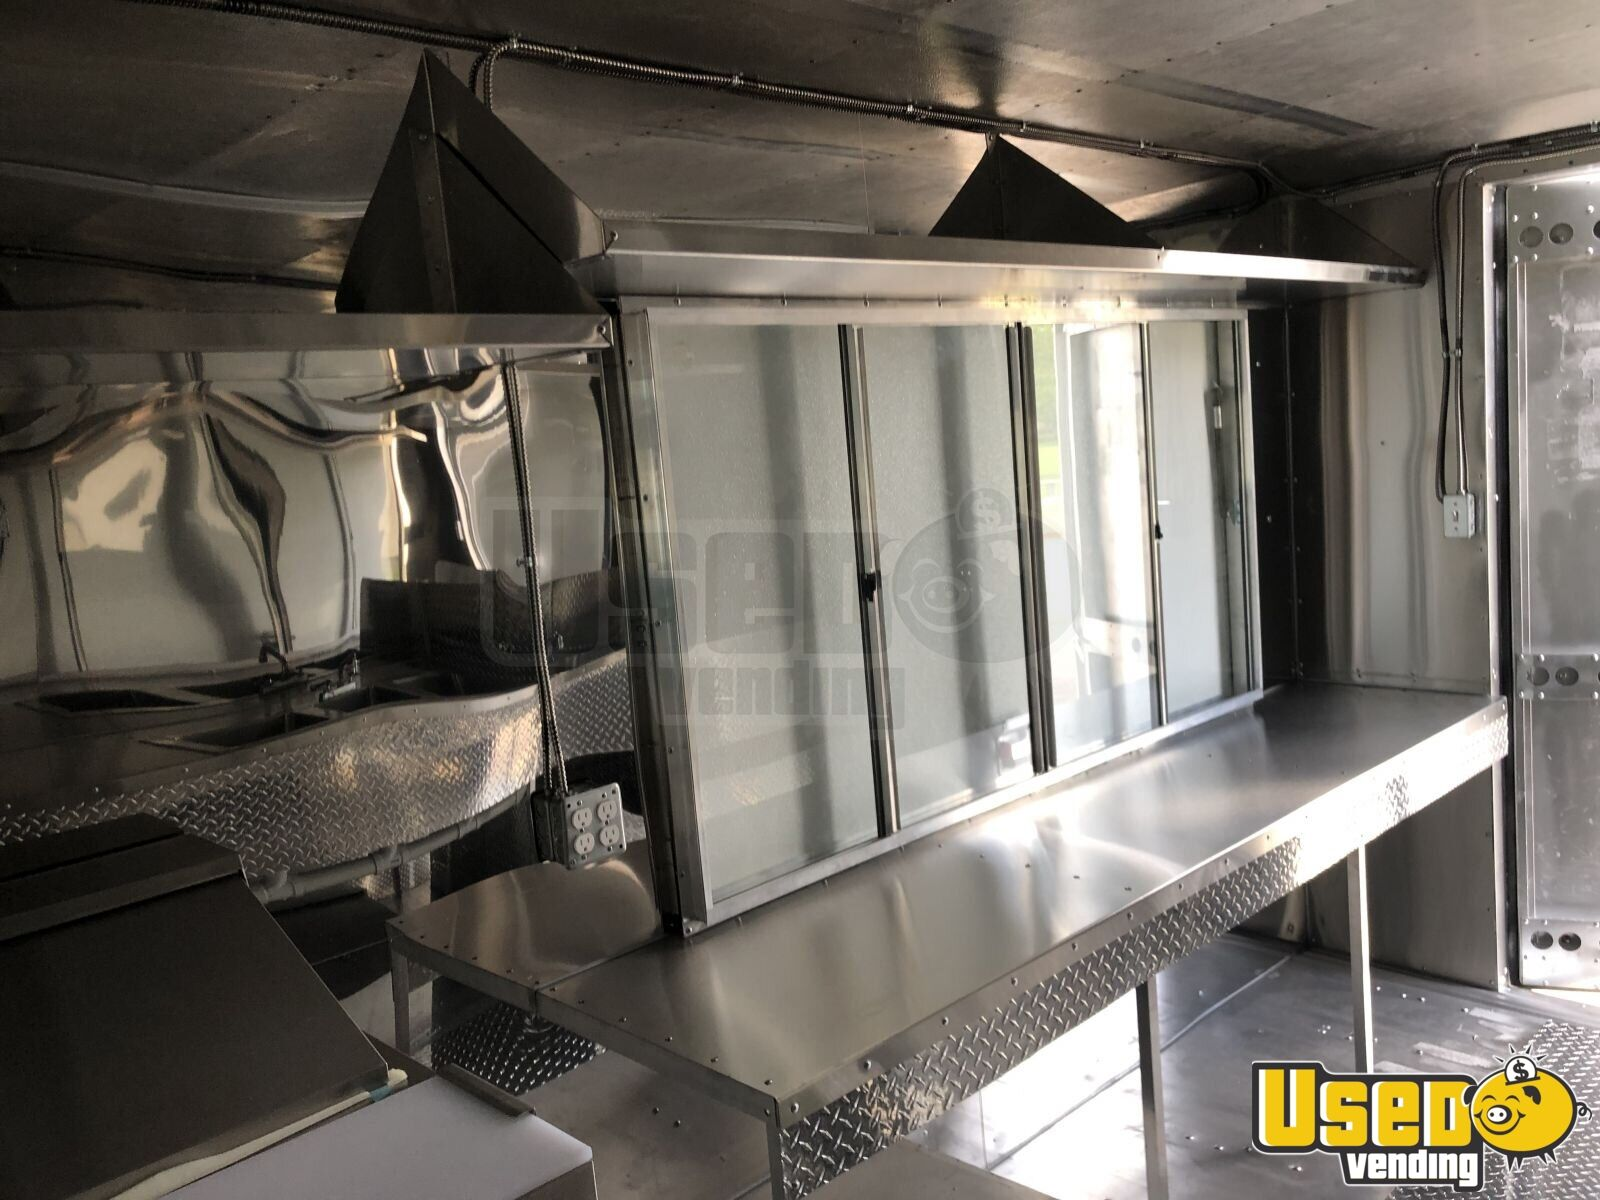 1999 Workhorse P32 All-purpose Food Truck Grease Trap Missouri Diesel Engine for Sale - 15